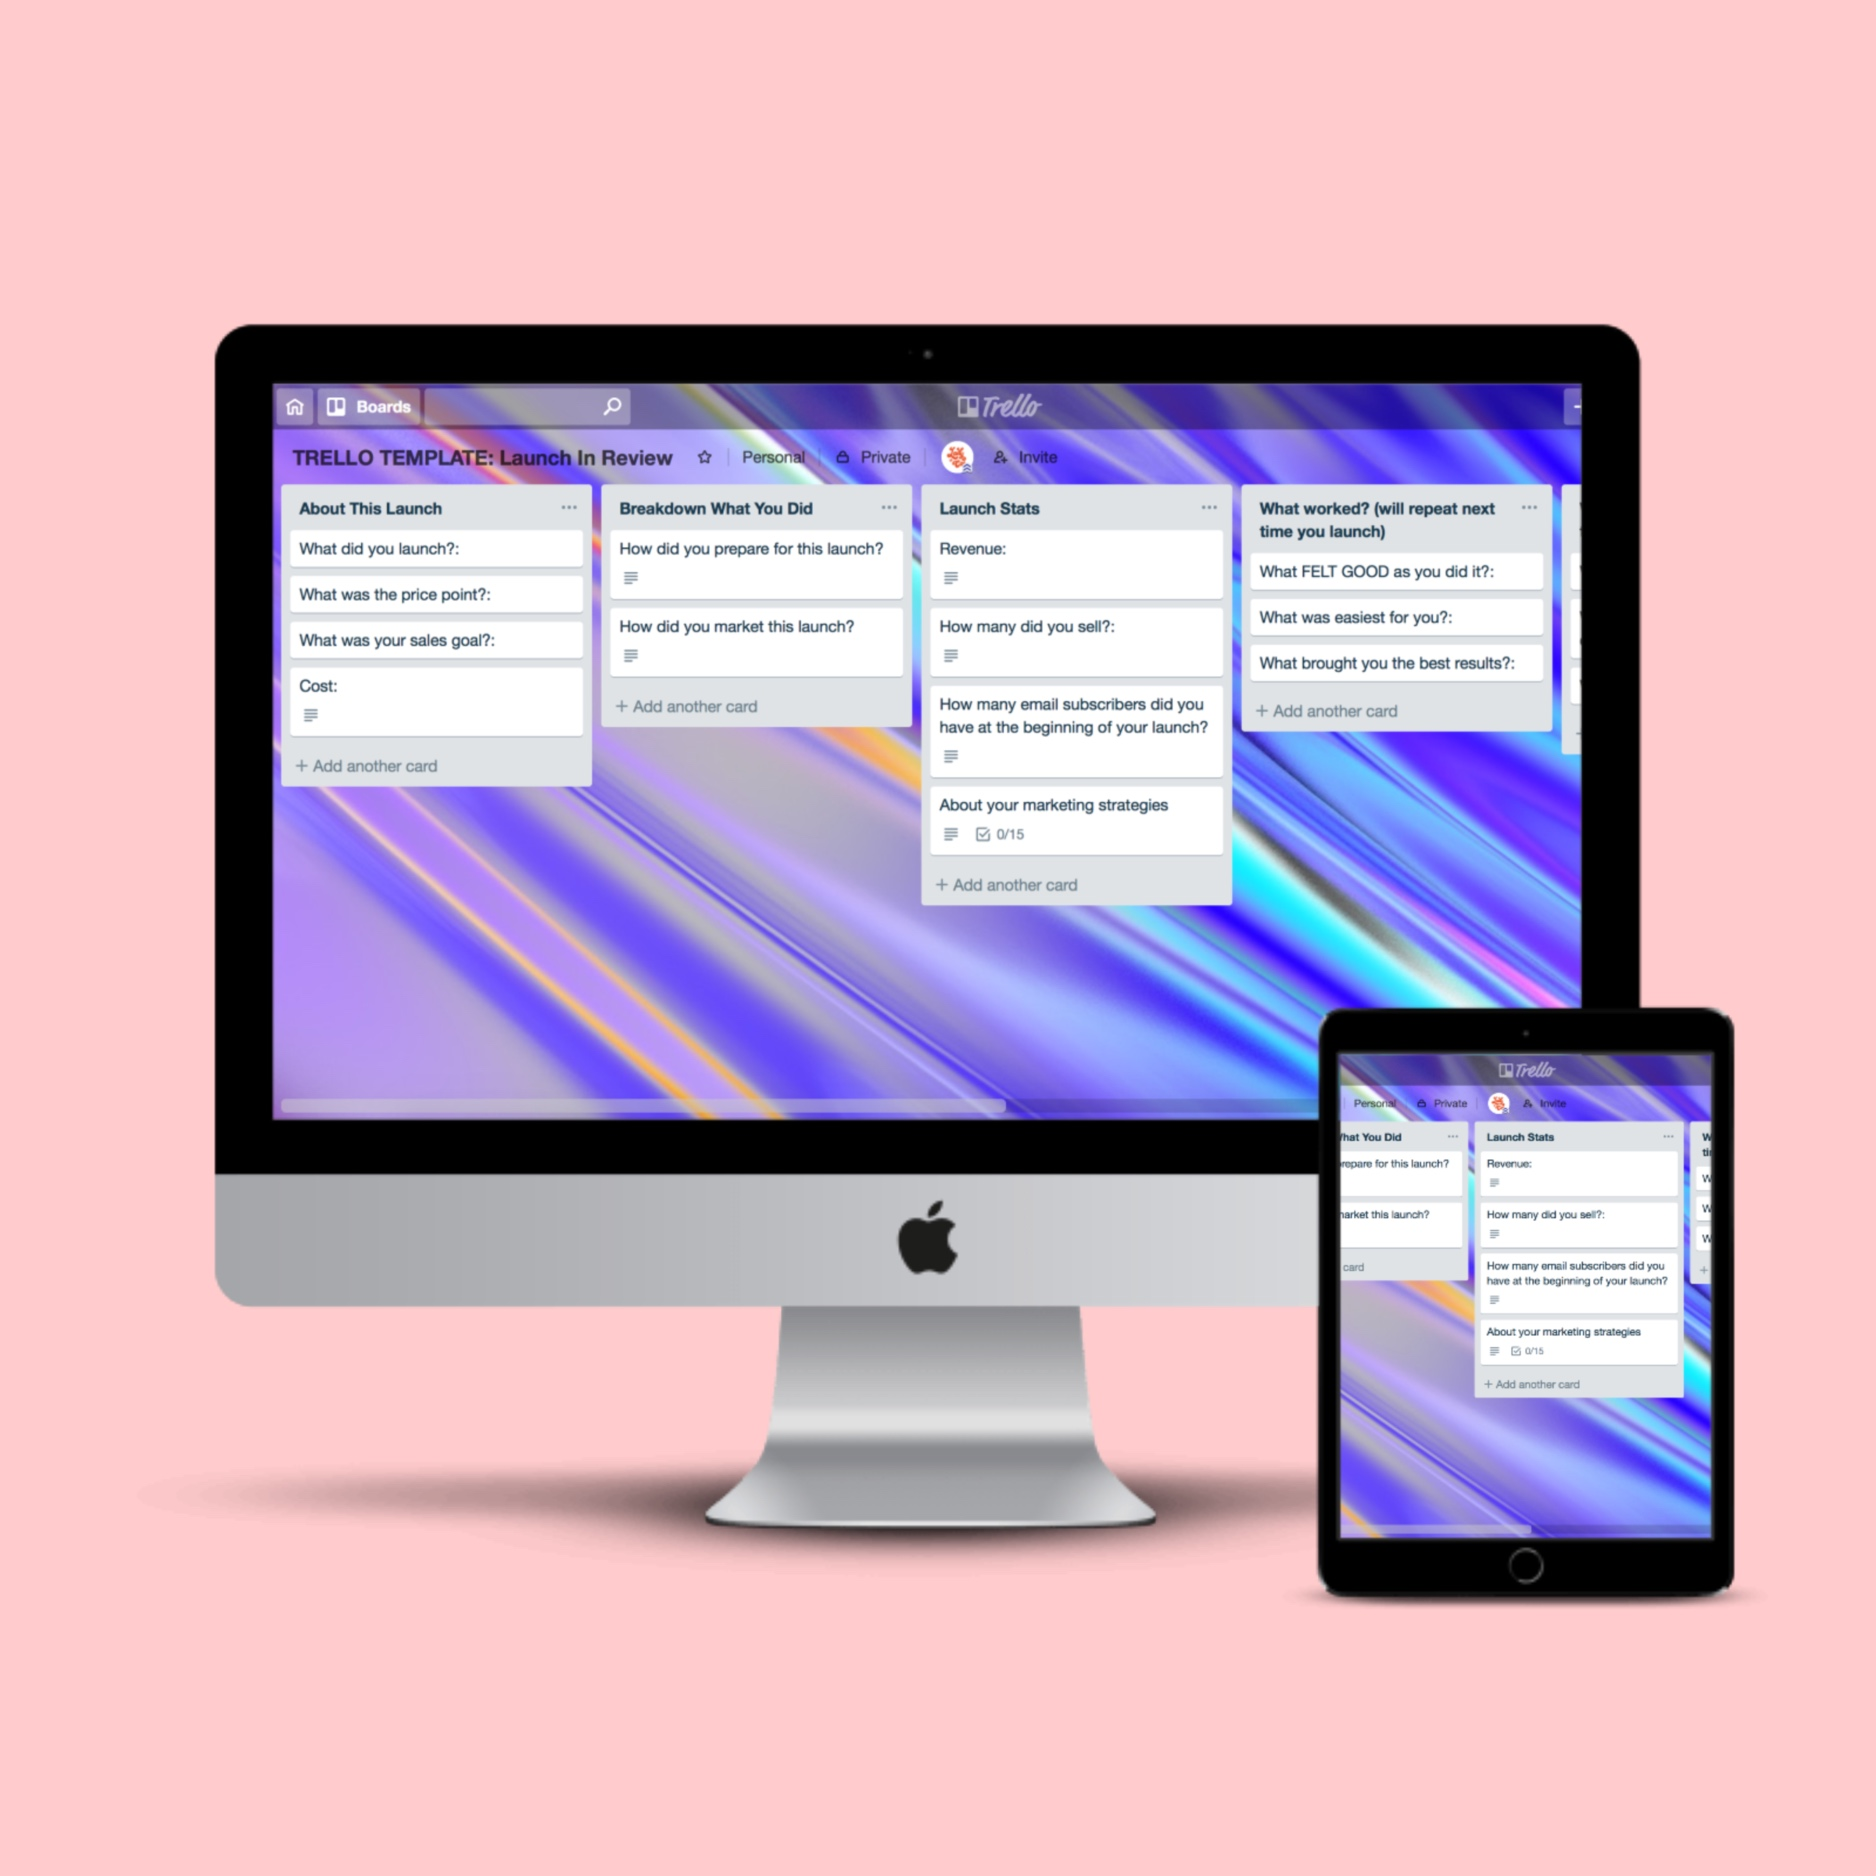 Trello+Board+%7C+Launch+In+Review.jpg